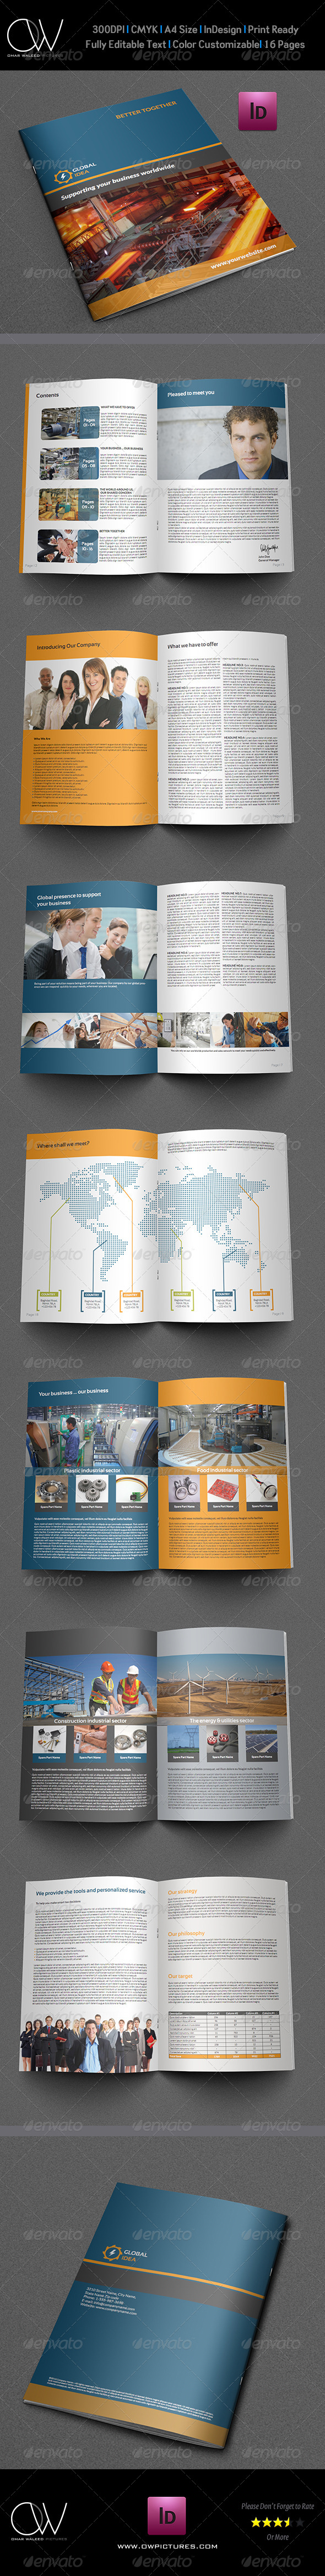 GraphicRiver Corporate Business Brochure Template Vol.2 5388113